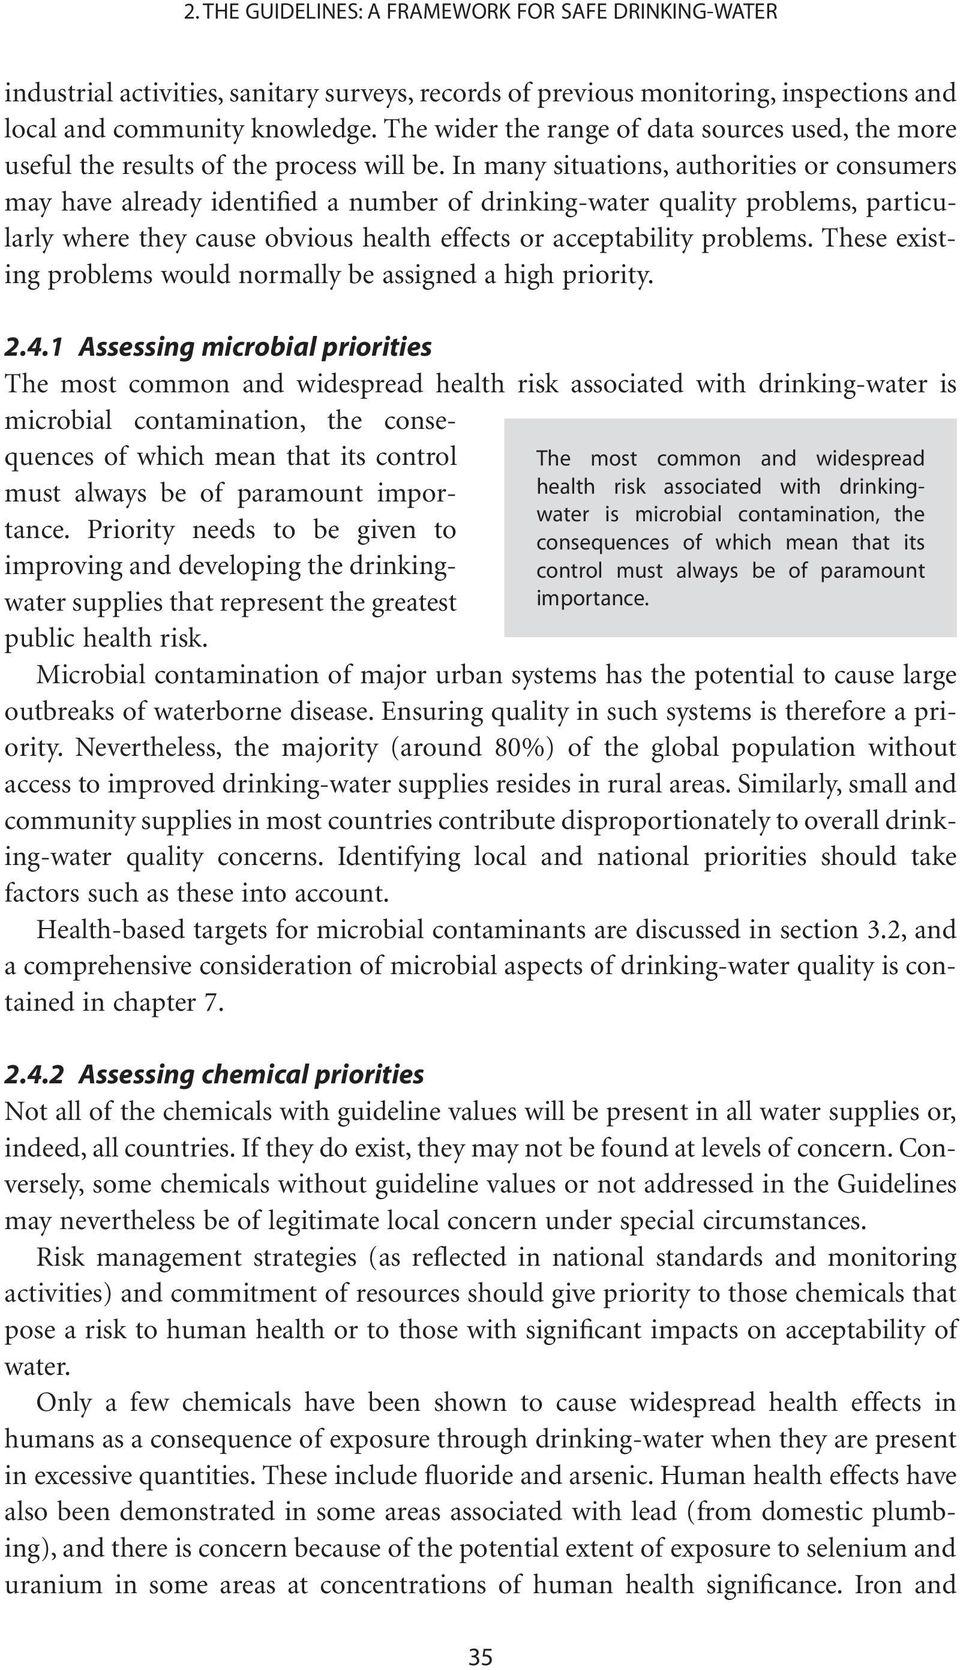 In many situations, authorities or consumers may have already identified a number of drinking-water quality problems, particularly where they cause obvious health effects or acceptability problems.